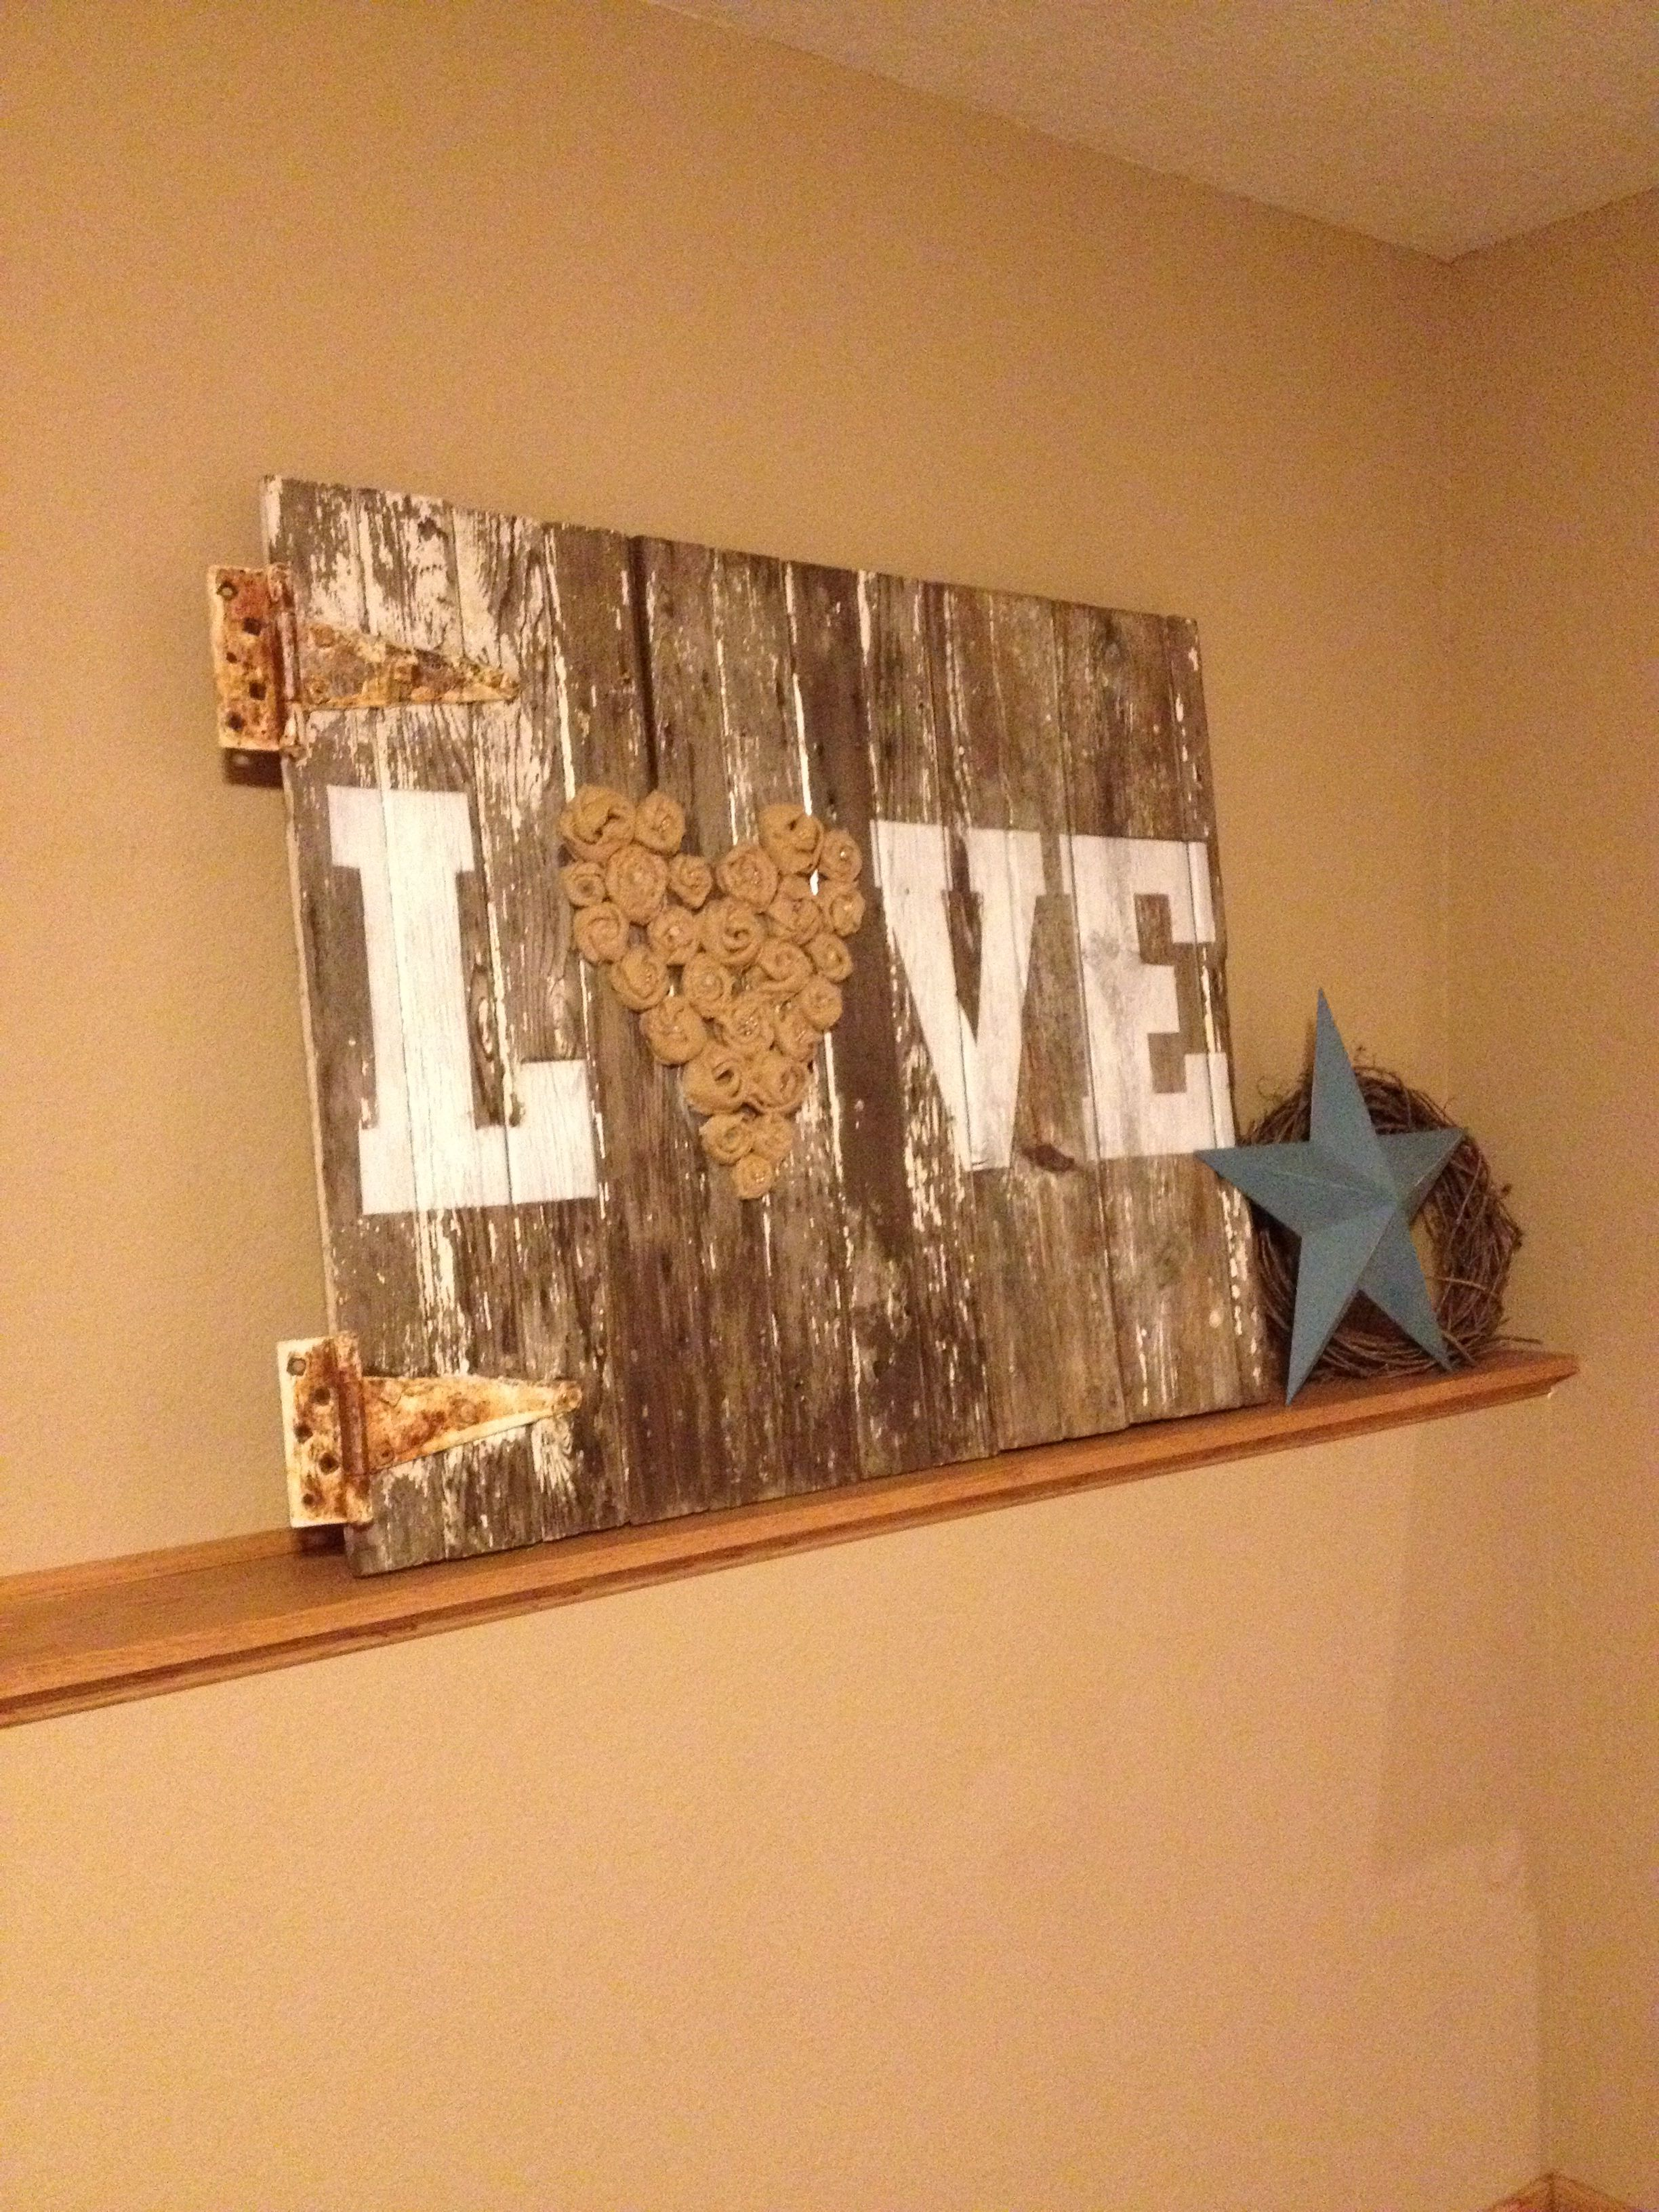 Barn Wood Art Ideas Barn Wood Decor Decorating Ideas And Improvements